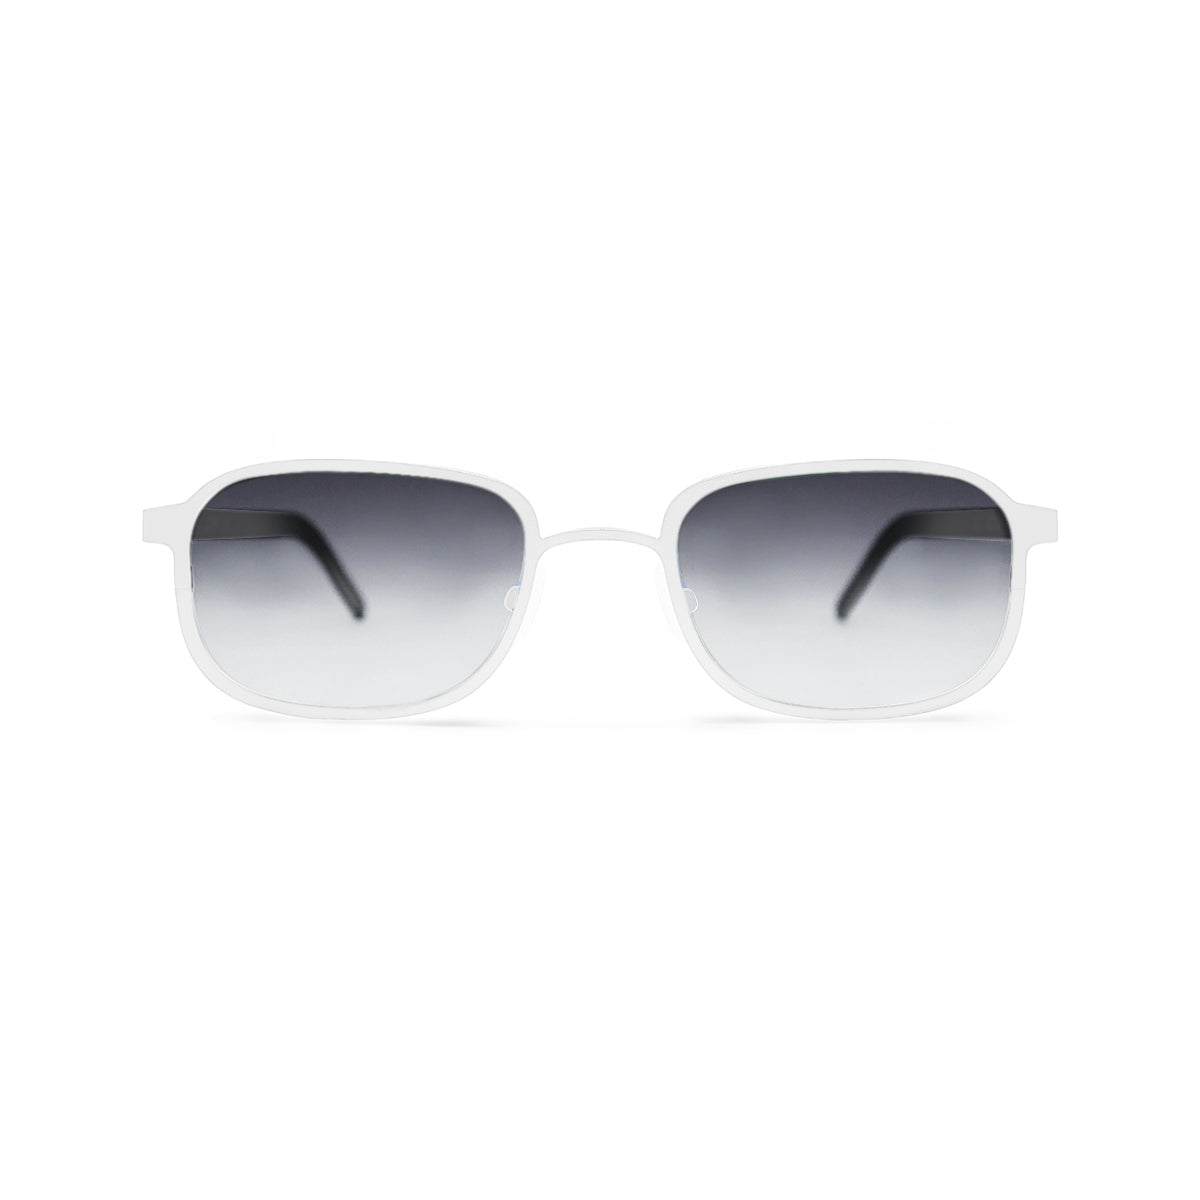 Metal. Porcelain. Smoke Lens. - BLYSZAK eyewear  - eyewear, optical, sunglasses